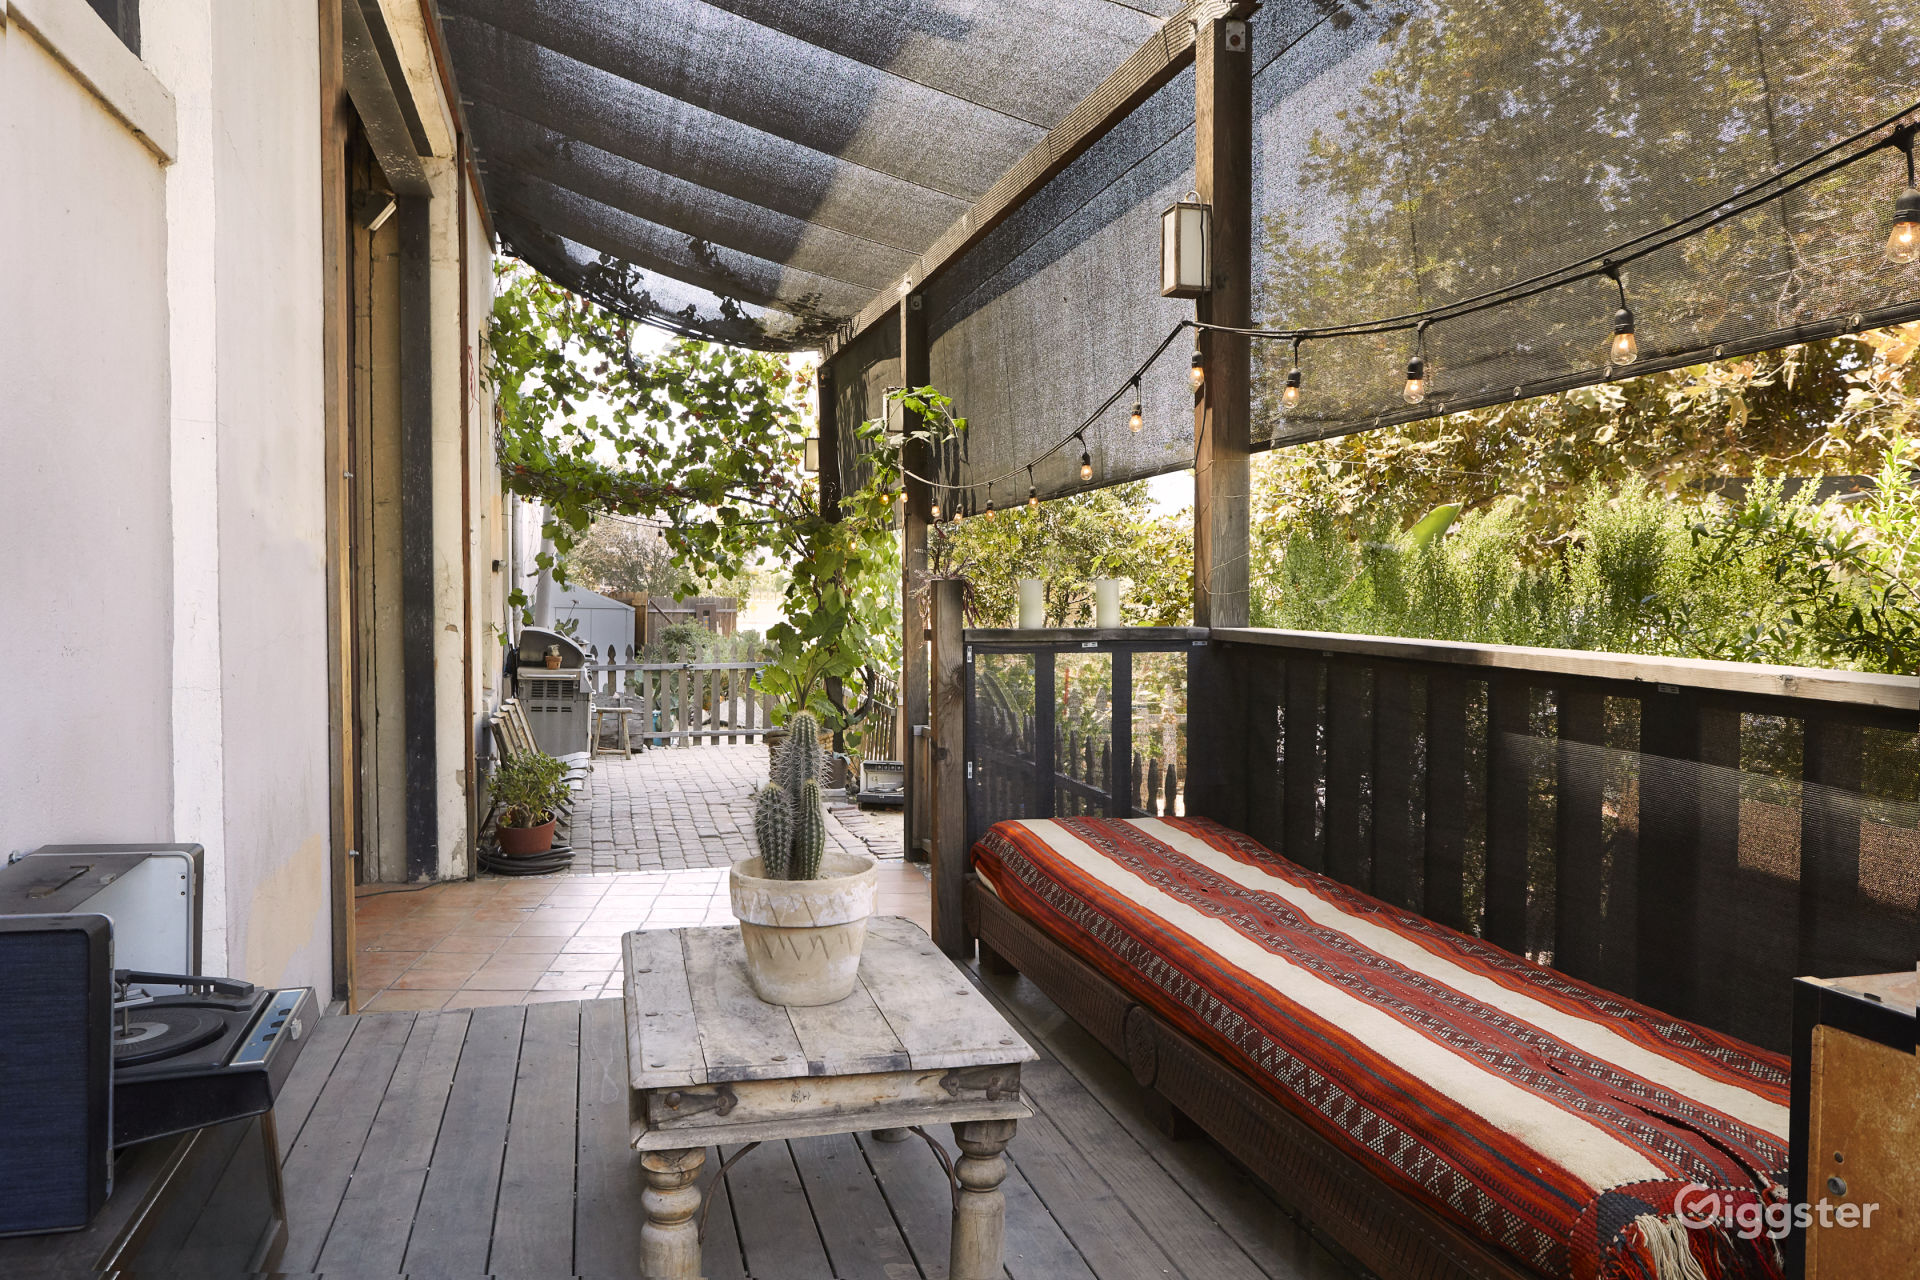 Half of the covered outdoor patio.